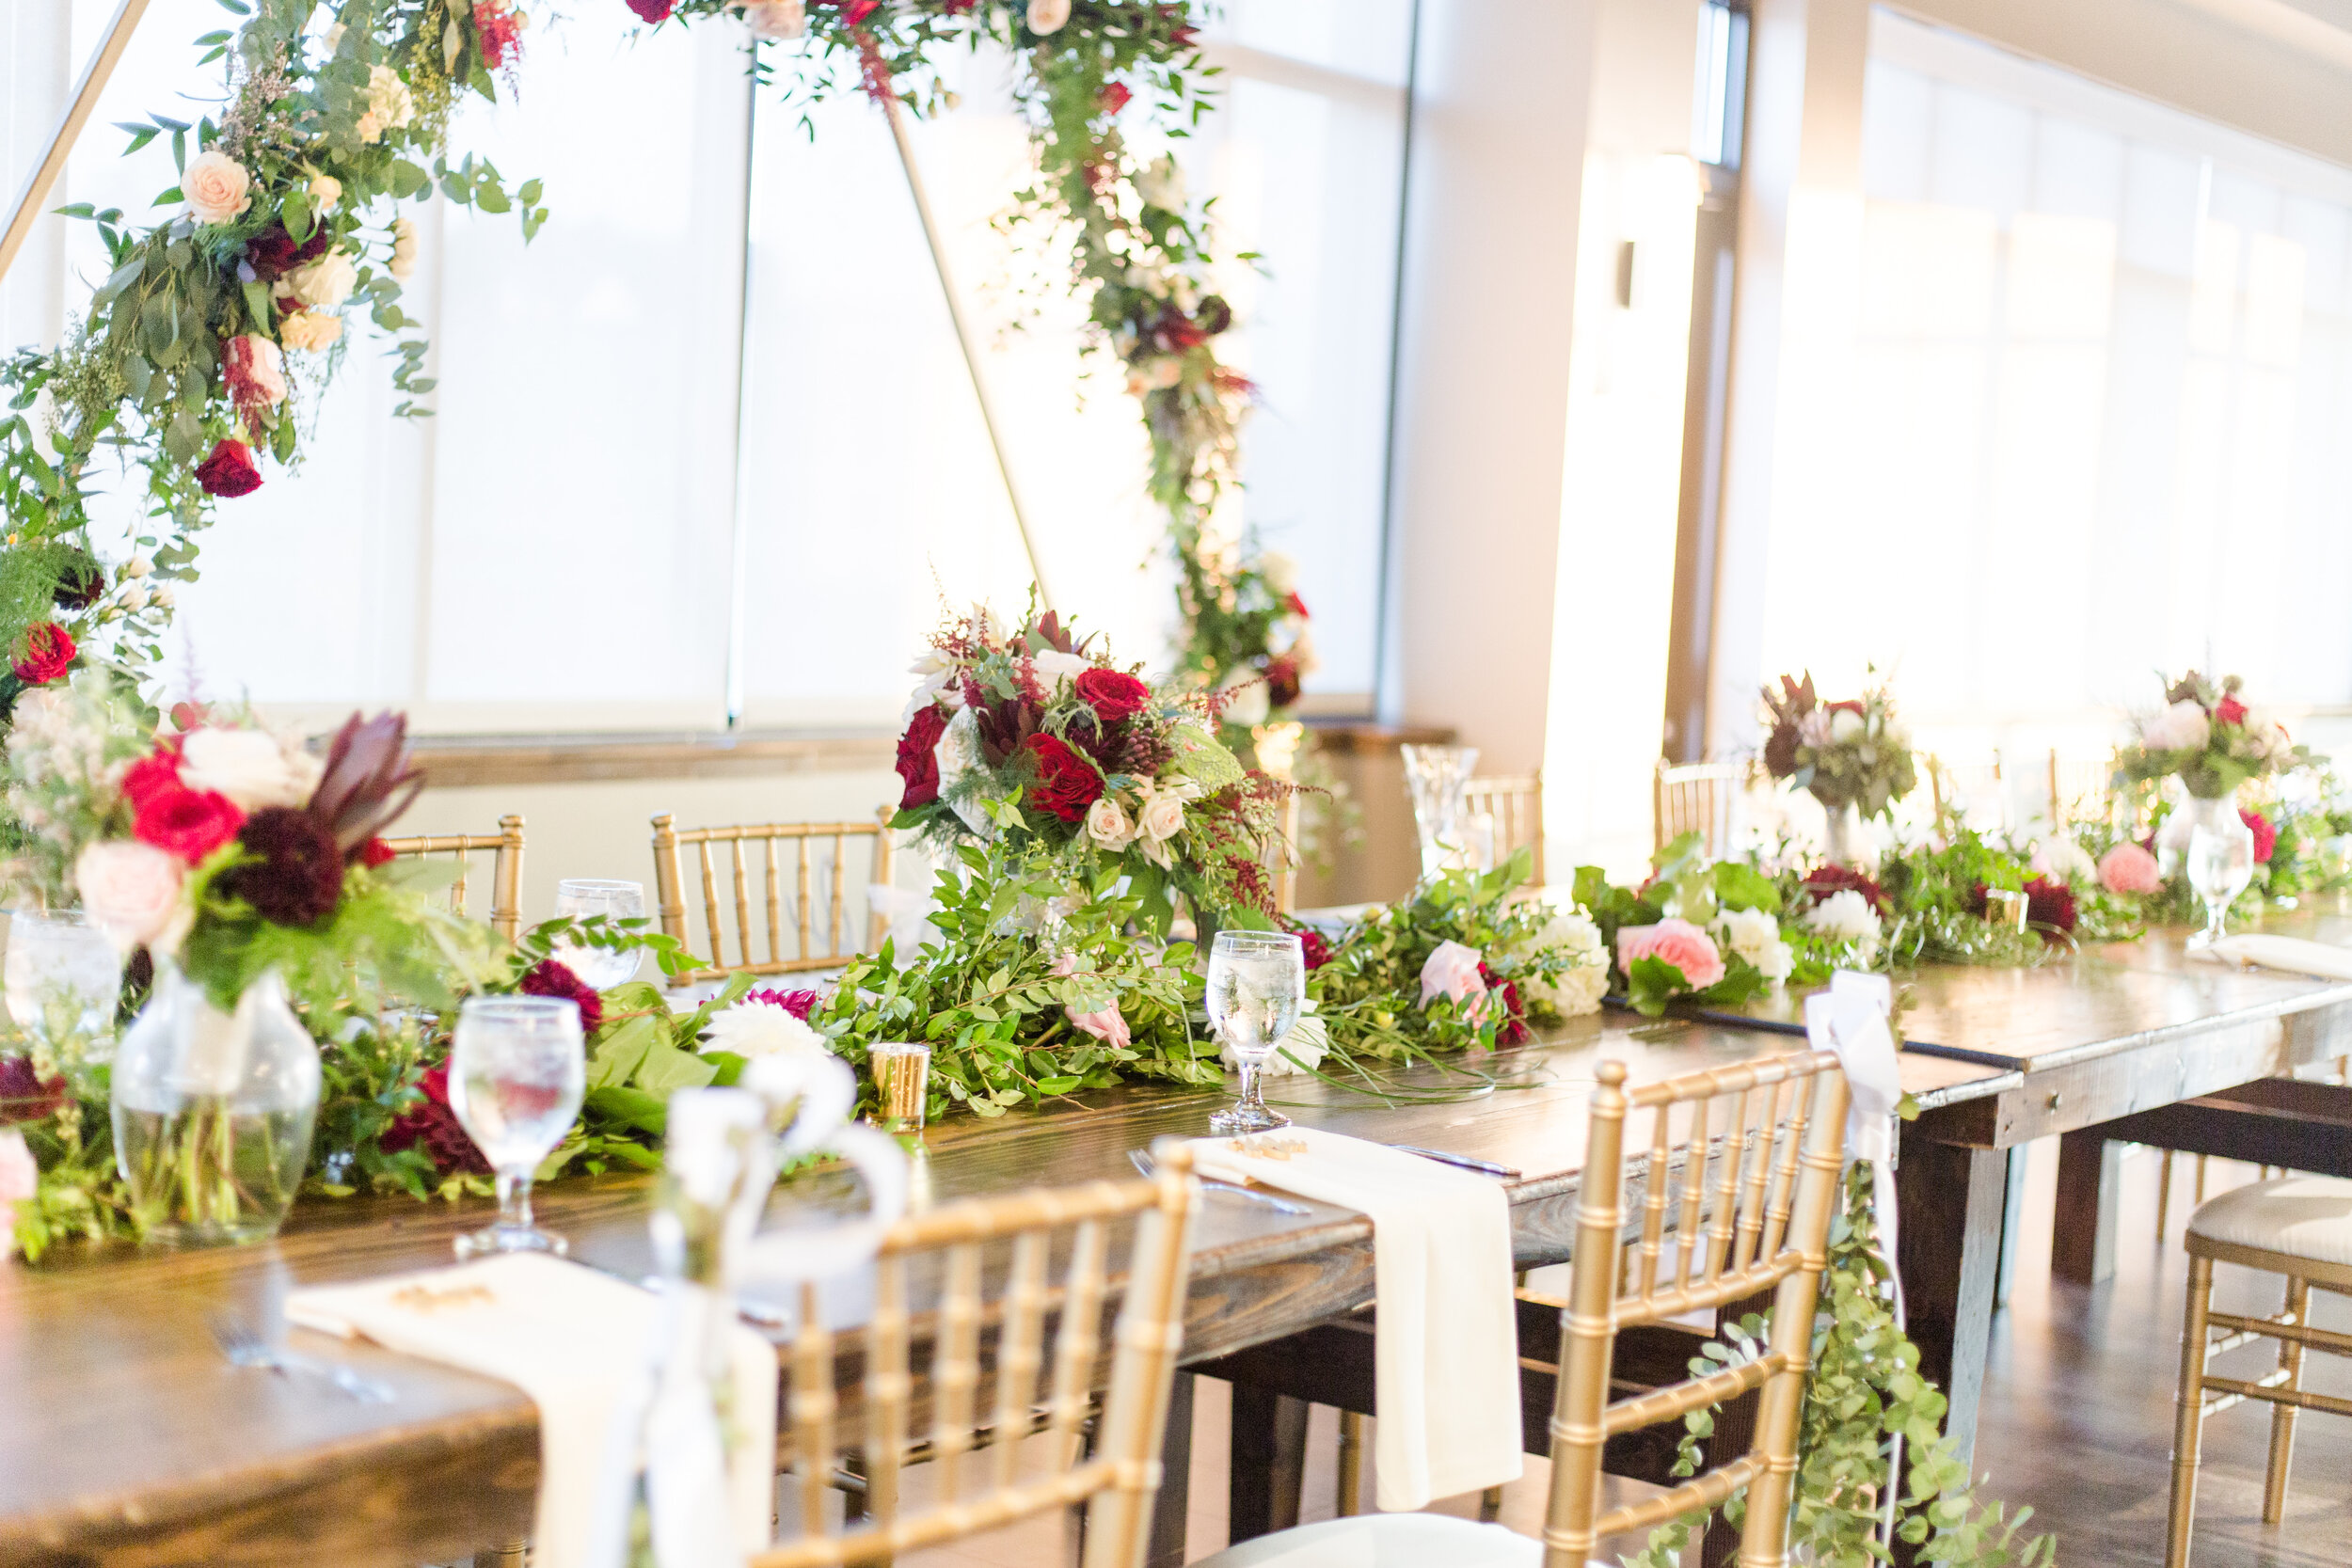 Stunning Greenery & Florals on Farm Tables